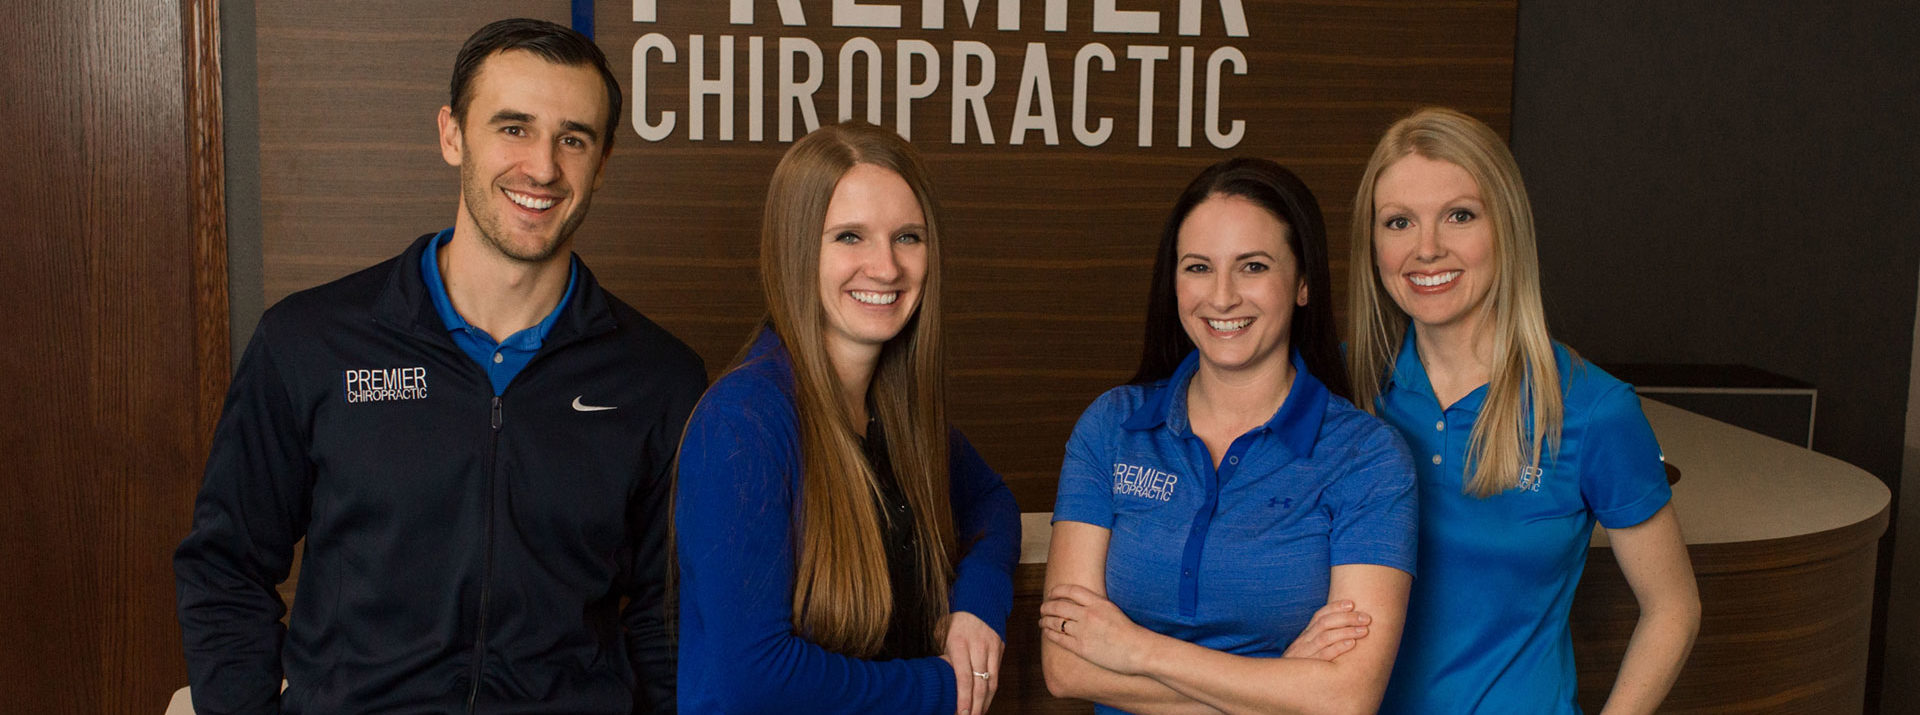 Welcome To Premier Chiropractic